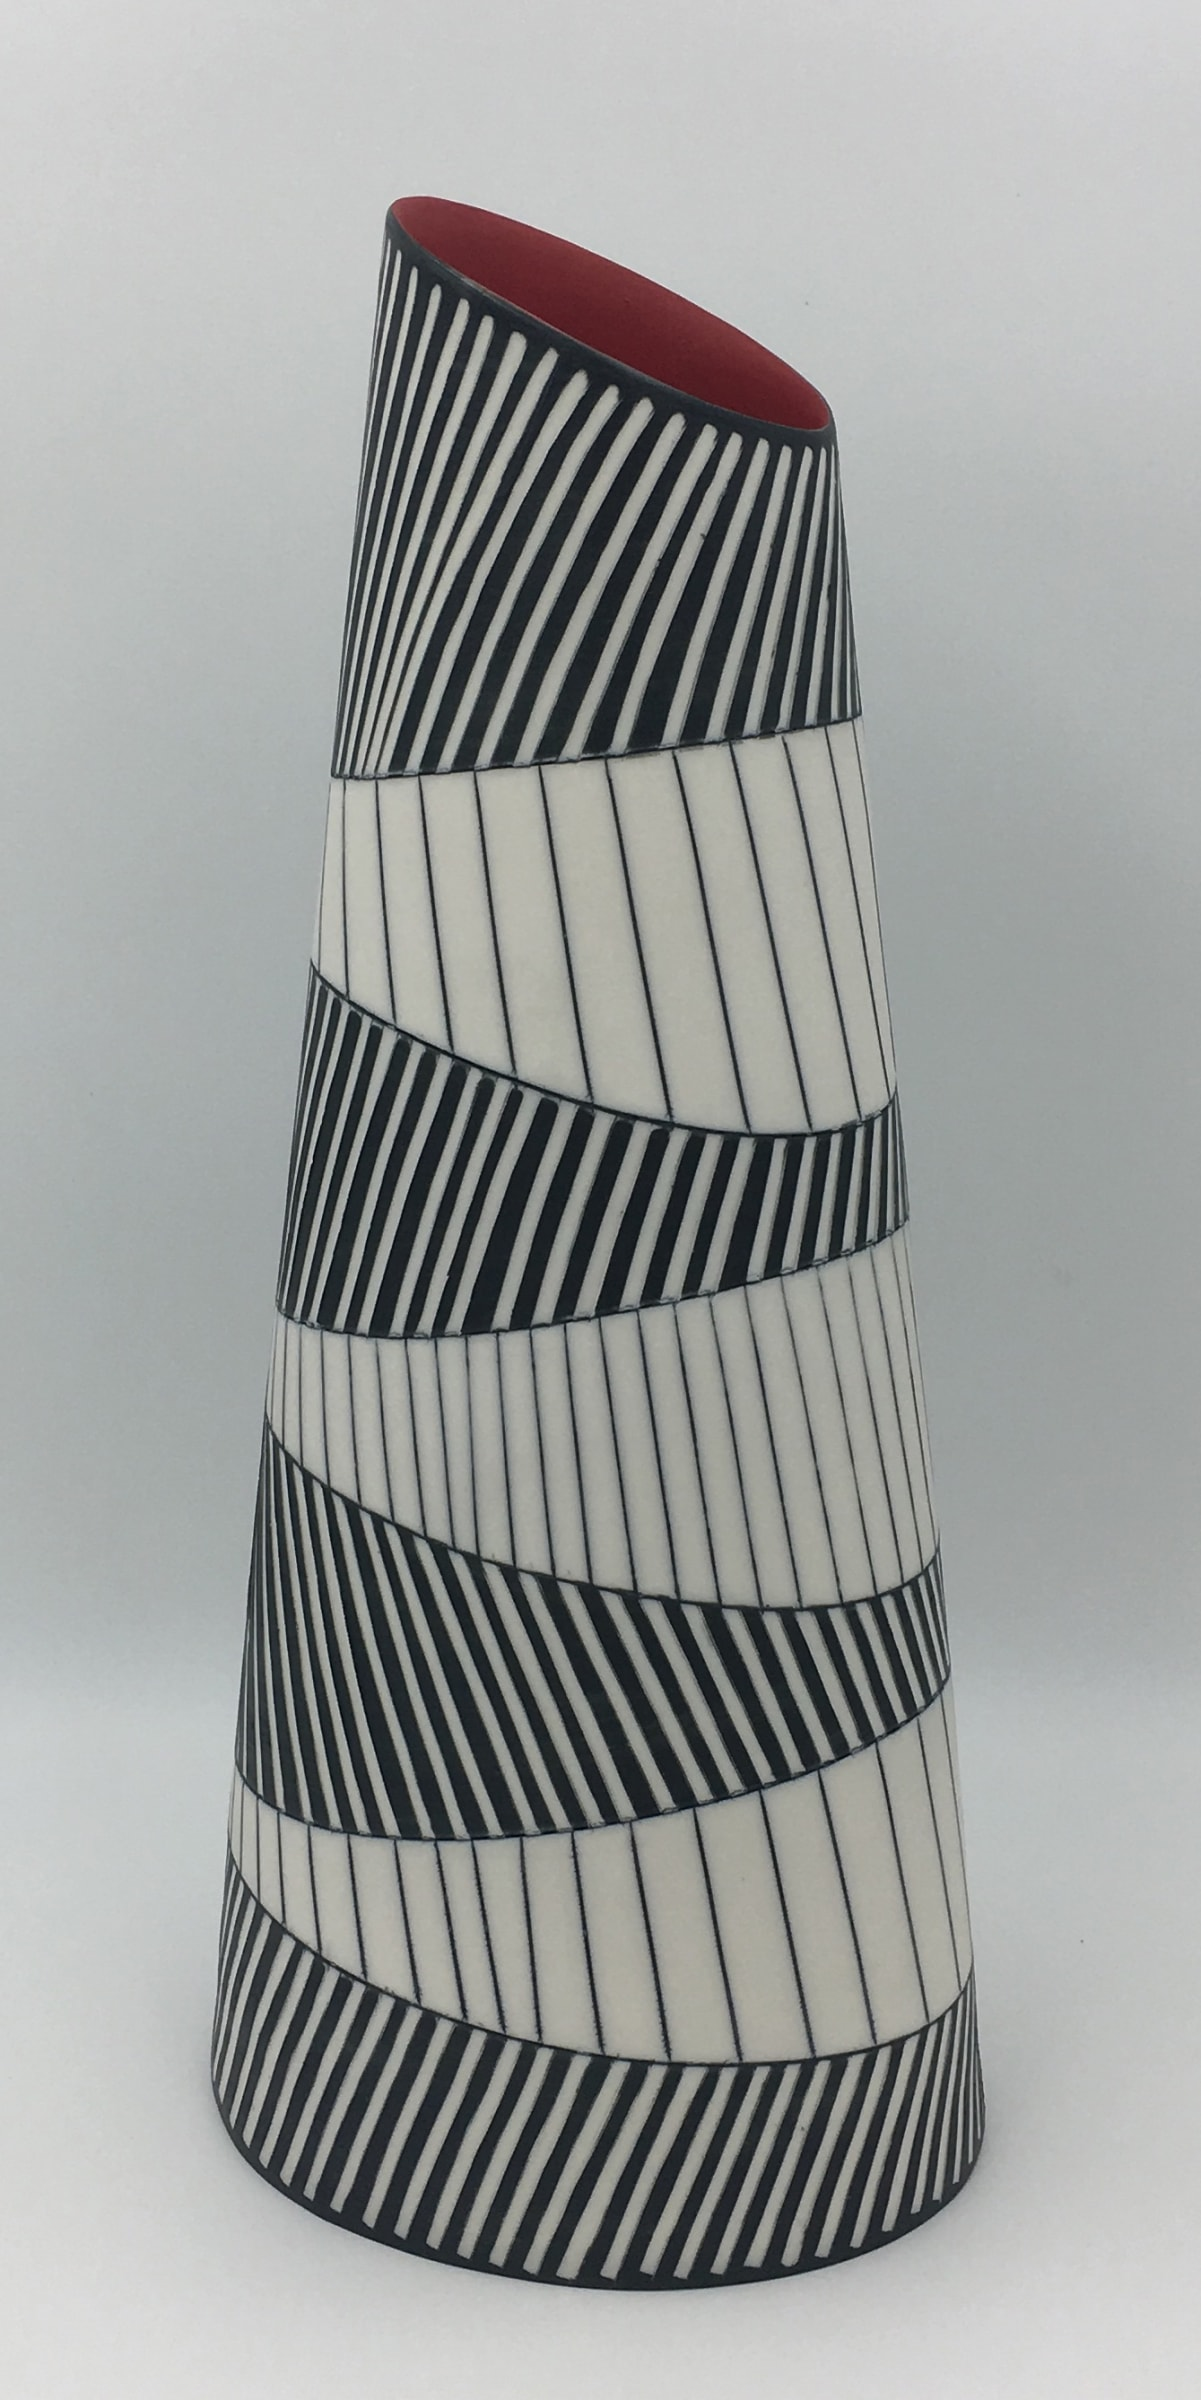 """<span class=""""link fancybox-details-link""""><a href=""""/artists/195-lara-scobie/works/6512-lara-scobie-tall-oval-vase-with-chevron-pattern-2019/"""">View Detail Page</a></span><div class=""""artist""""><strong>Lara Scobie</strong></div> b. 1967 <div class=""""title""""><em>Tall Oval Vase with Chevron Pattern </em>, 2019</div> <div class=""""medium"""">Porcelain</div><div class=""""copyright_line"""">Own Art: £82 x 10 Months, 0% APR</div>"""